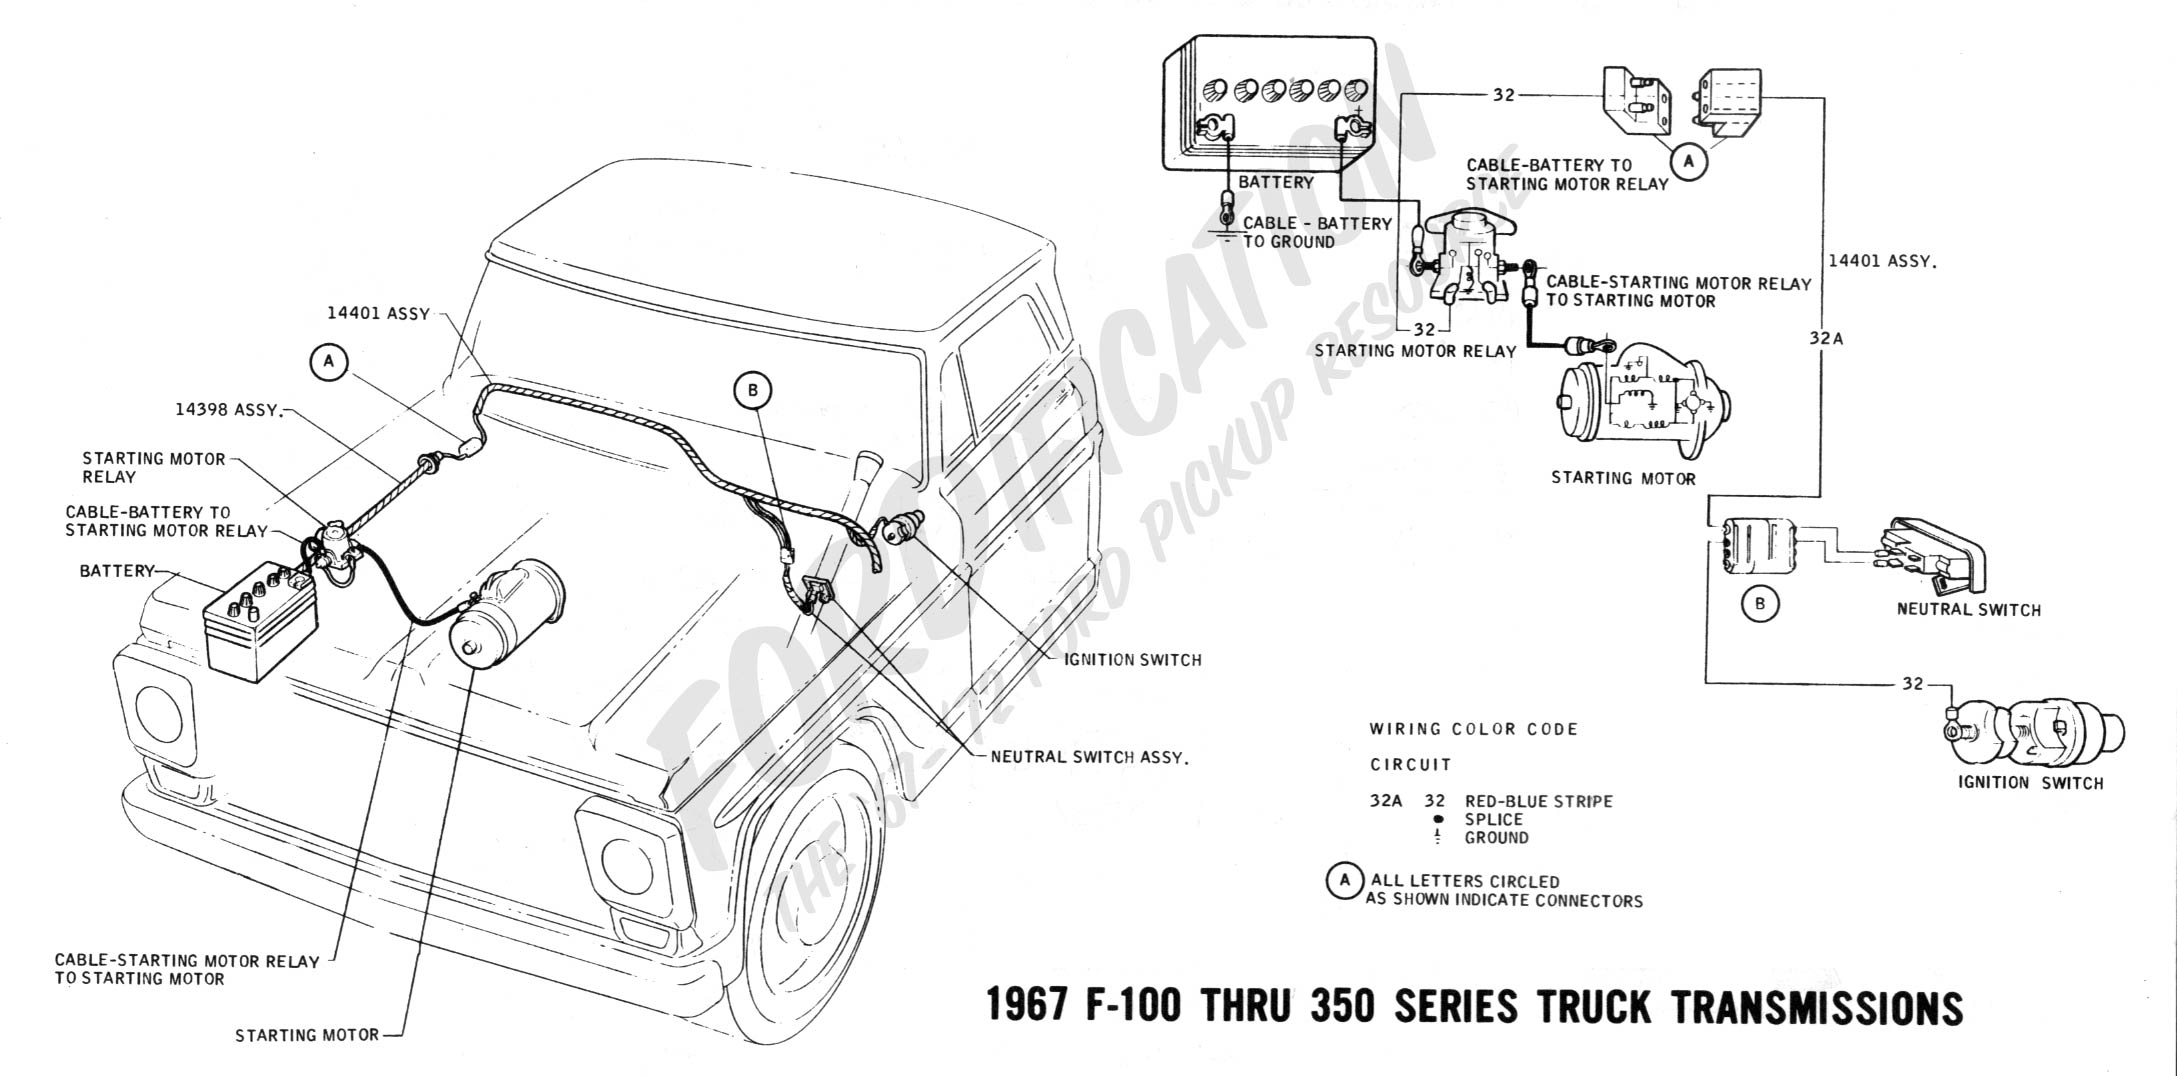 wiring 1967trucktranny 1985 ford f250 starter solenoid wiring diagram circuit and 1985 ford truck wiring diagram at eliteediting.co